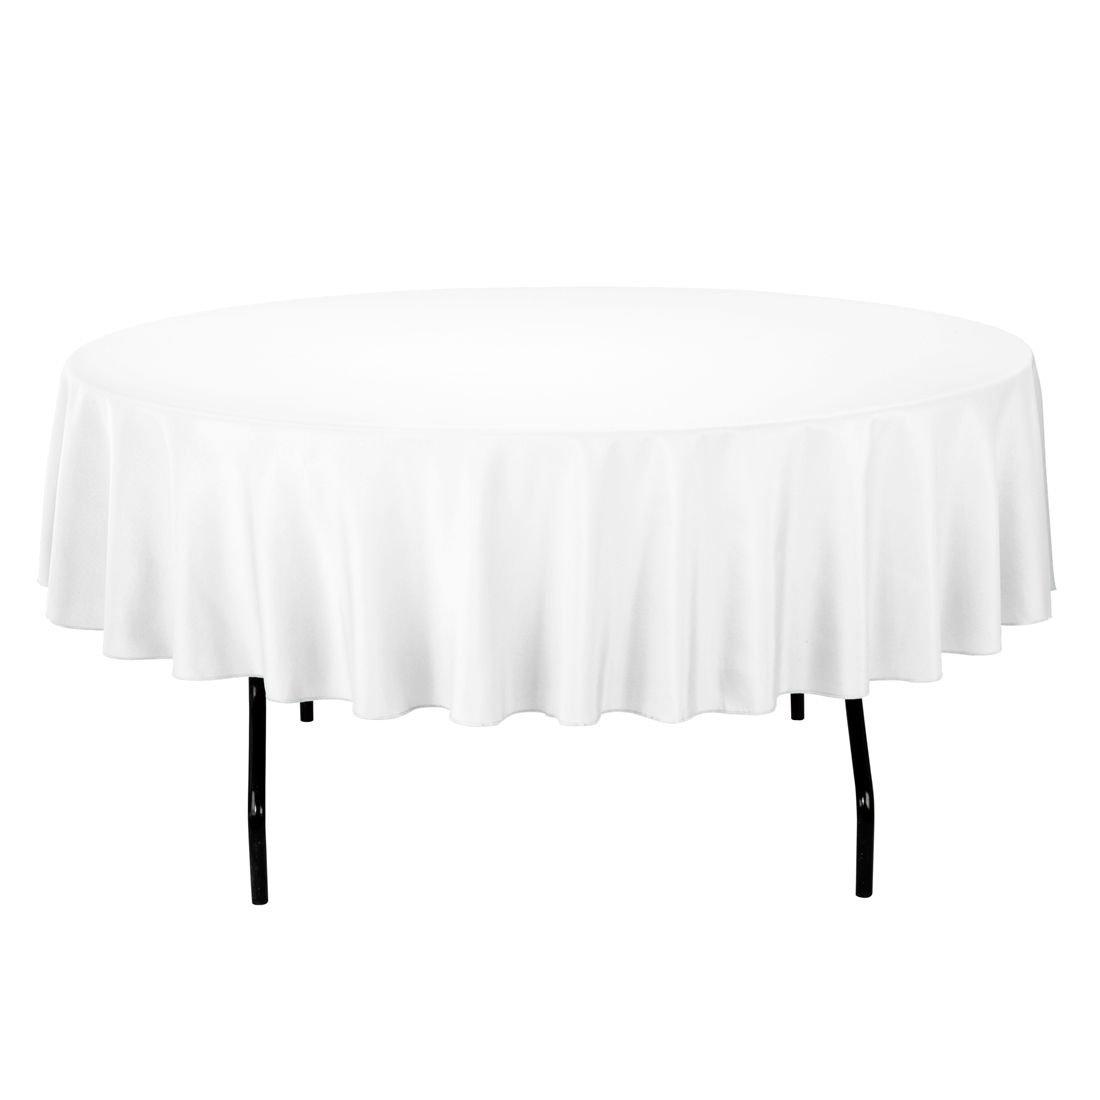 Gee Di Moda Tablecloth - 90'' Inch Round Tablecloths for Circular Table Cover in White Washable Polyester - Great for Buffet Table, Parties, Holiday Dinner & More